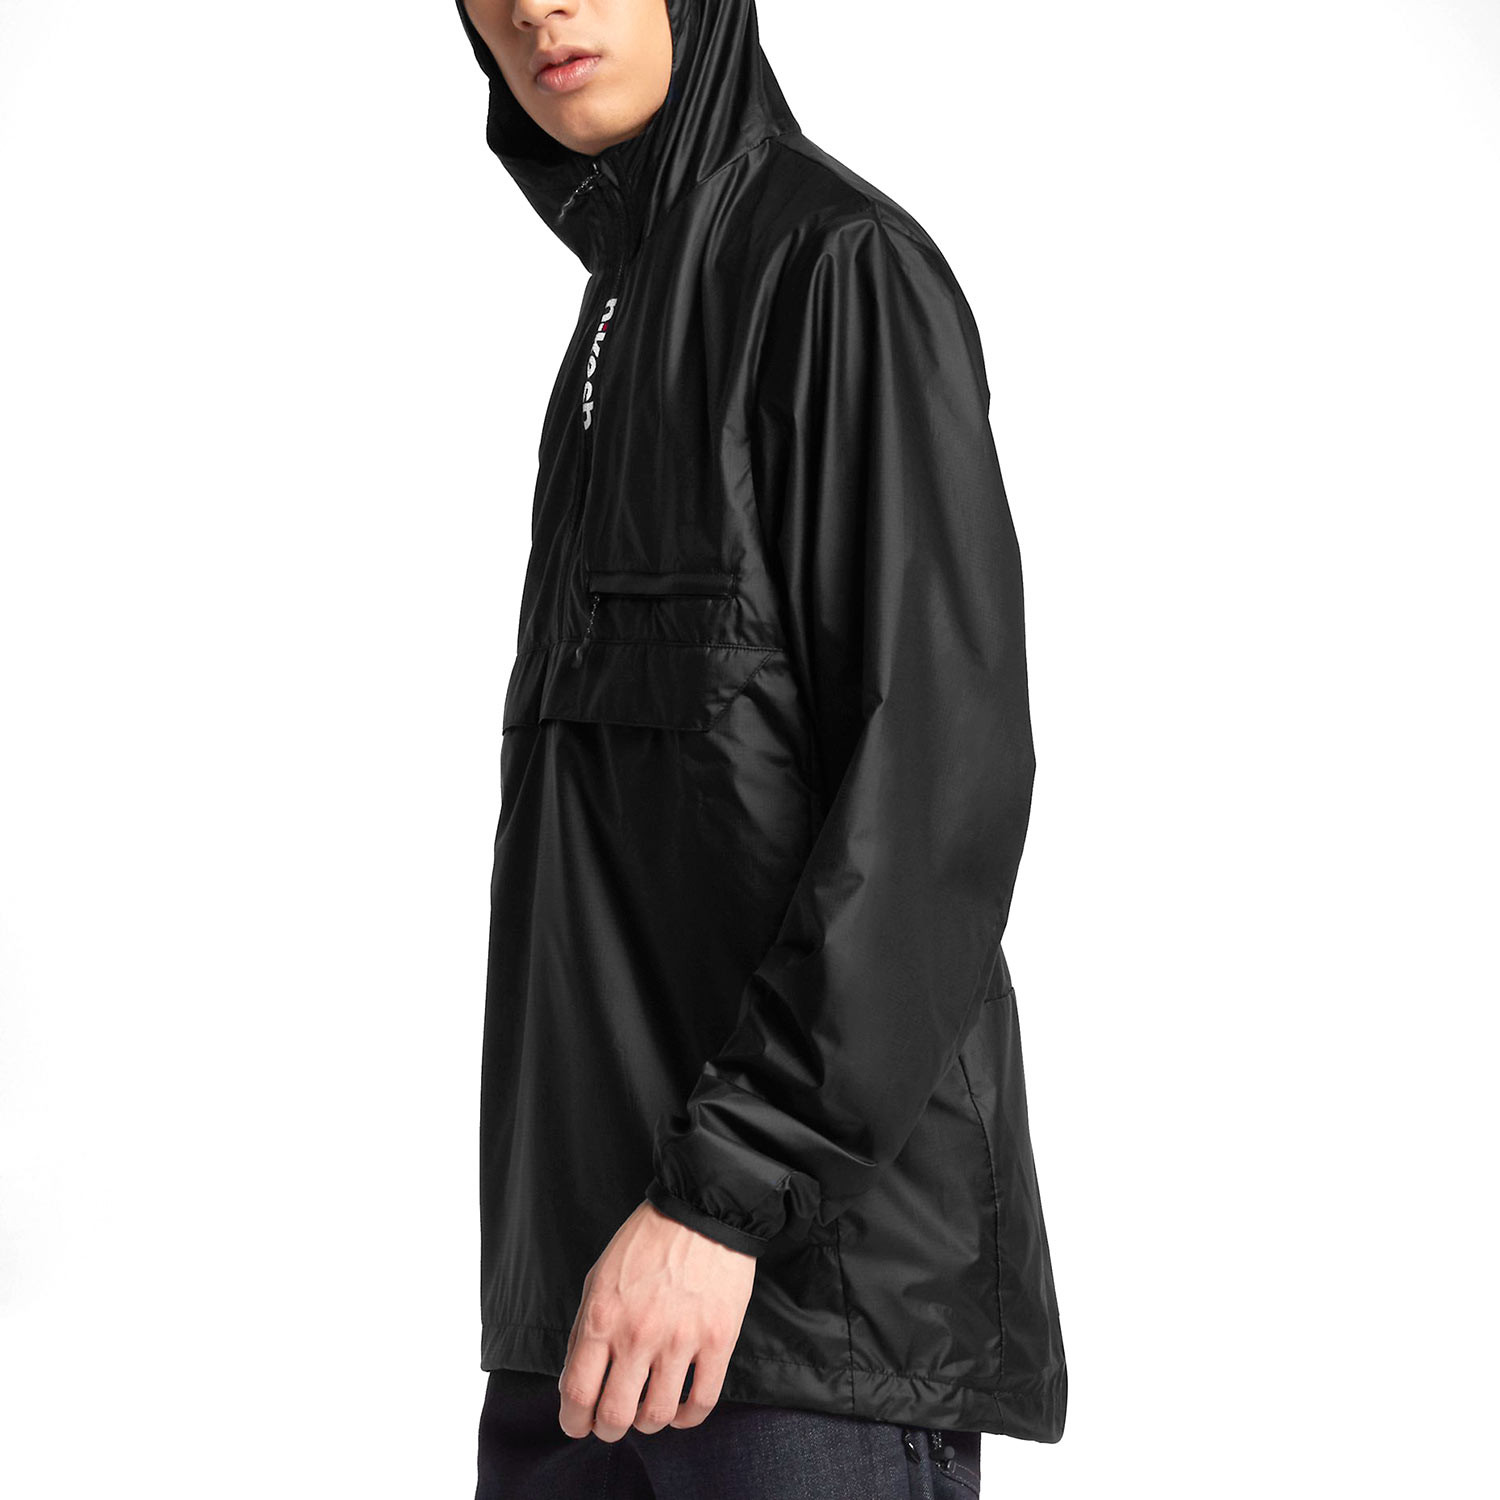 421058587257 Street jacket Nike SB Packable Anorak black black